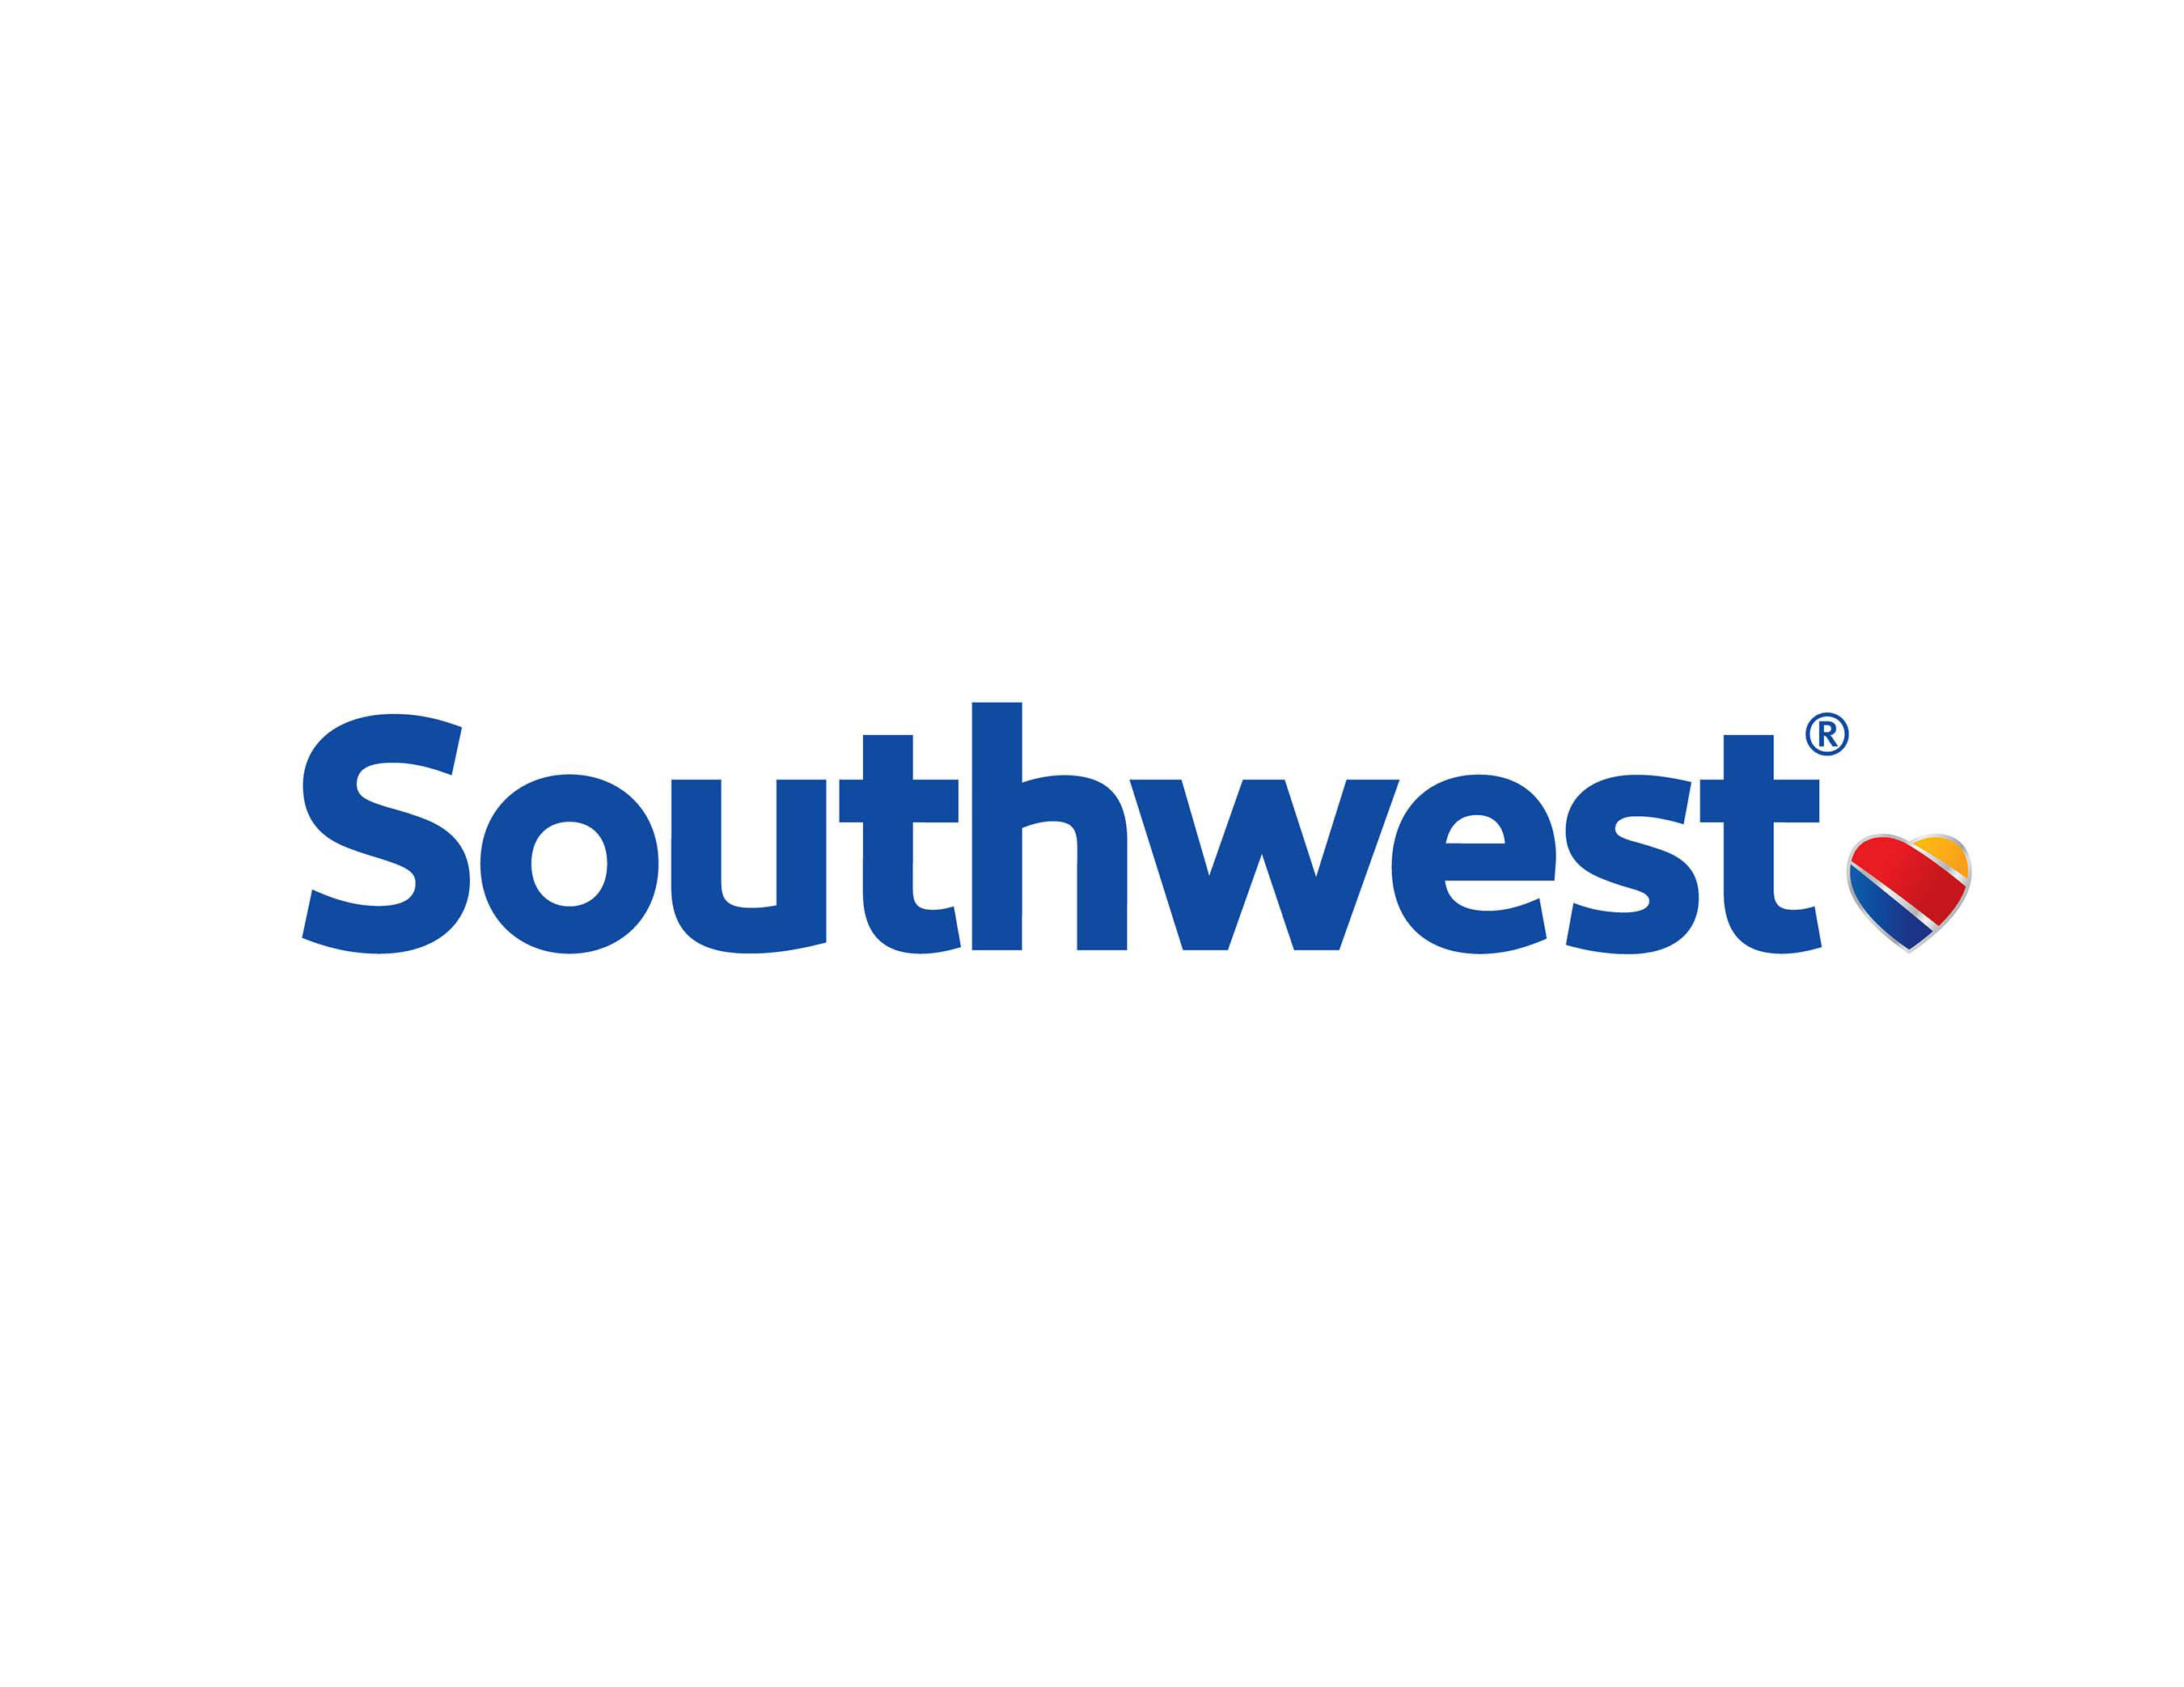 Twice The Fun For The Twin Cities: Southwest Airlines Announces New Flights Connecting